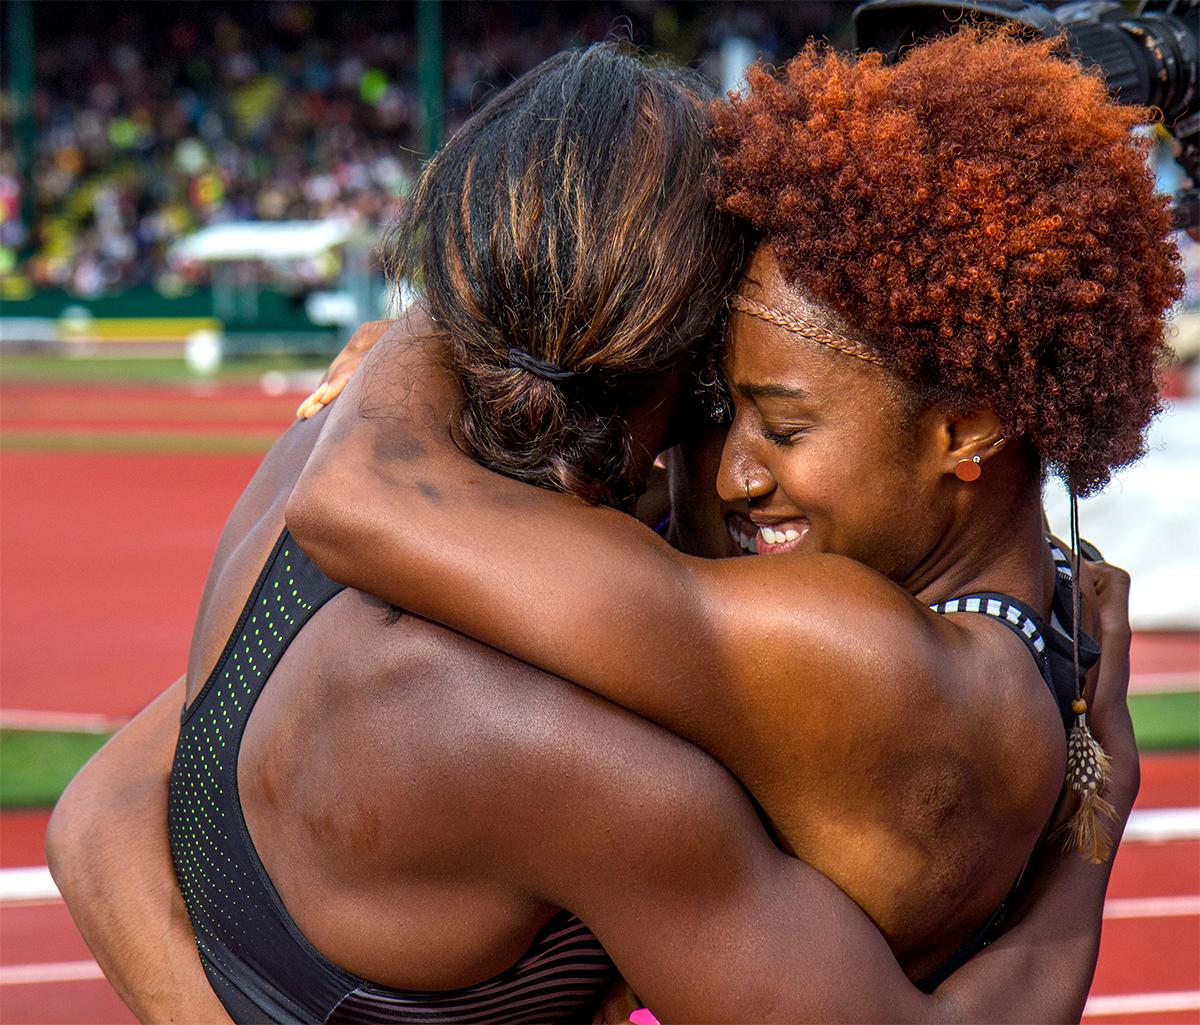 The podium of the 100 meter hurdles final embrace in a hug. Nike' Brianna Rollins won with a time of 12.34, Kristi Castlin finished second, and Nike's Nia Ali finished third. Photo by August Frank, Oregon News Lab